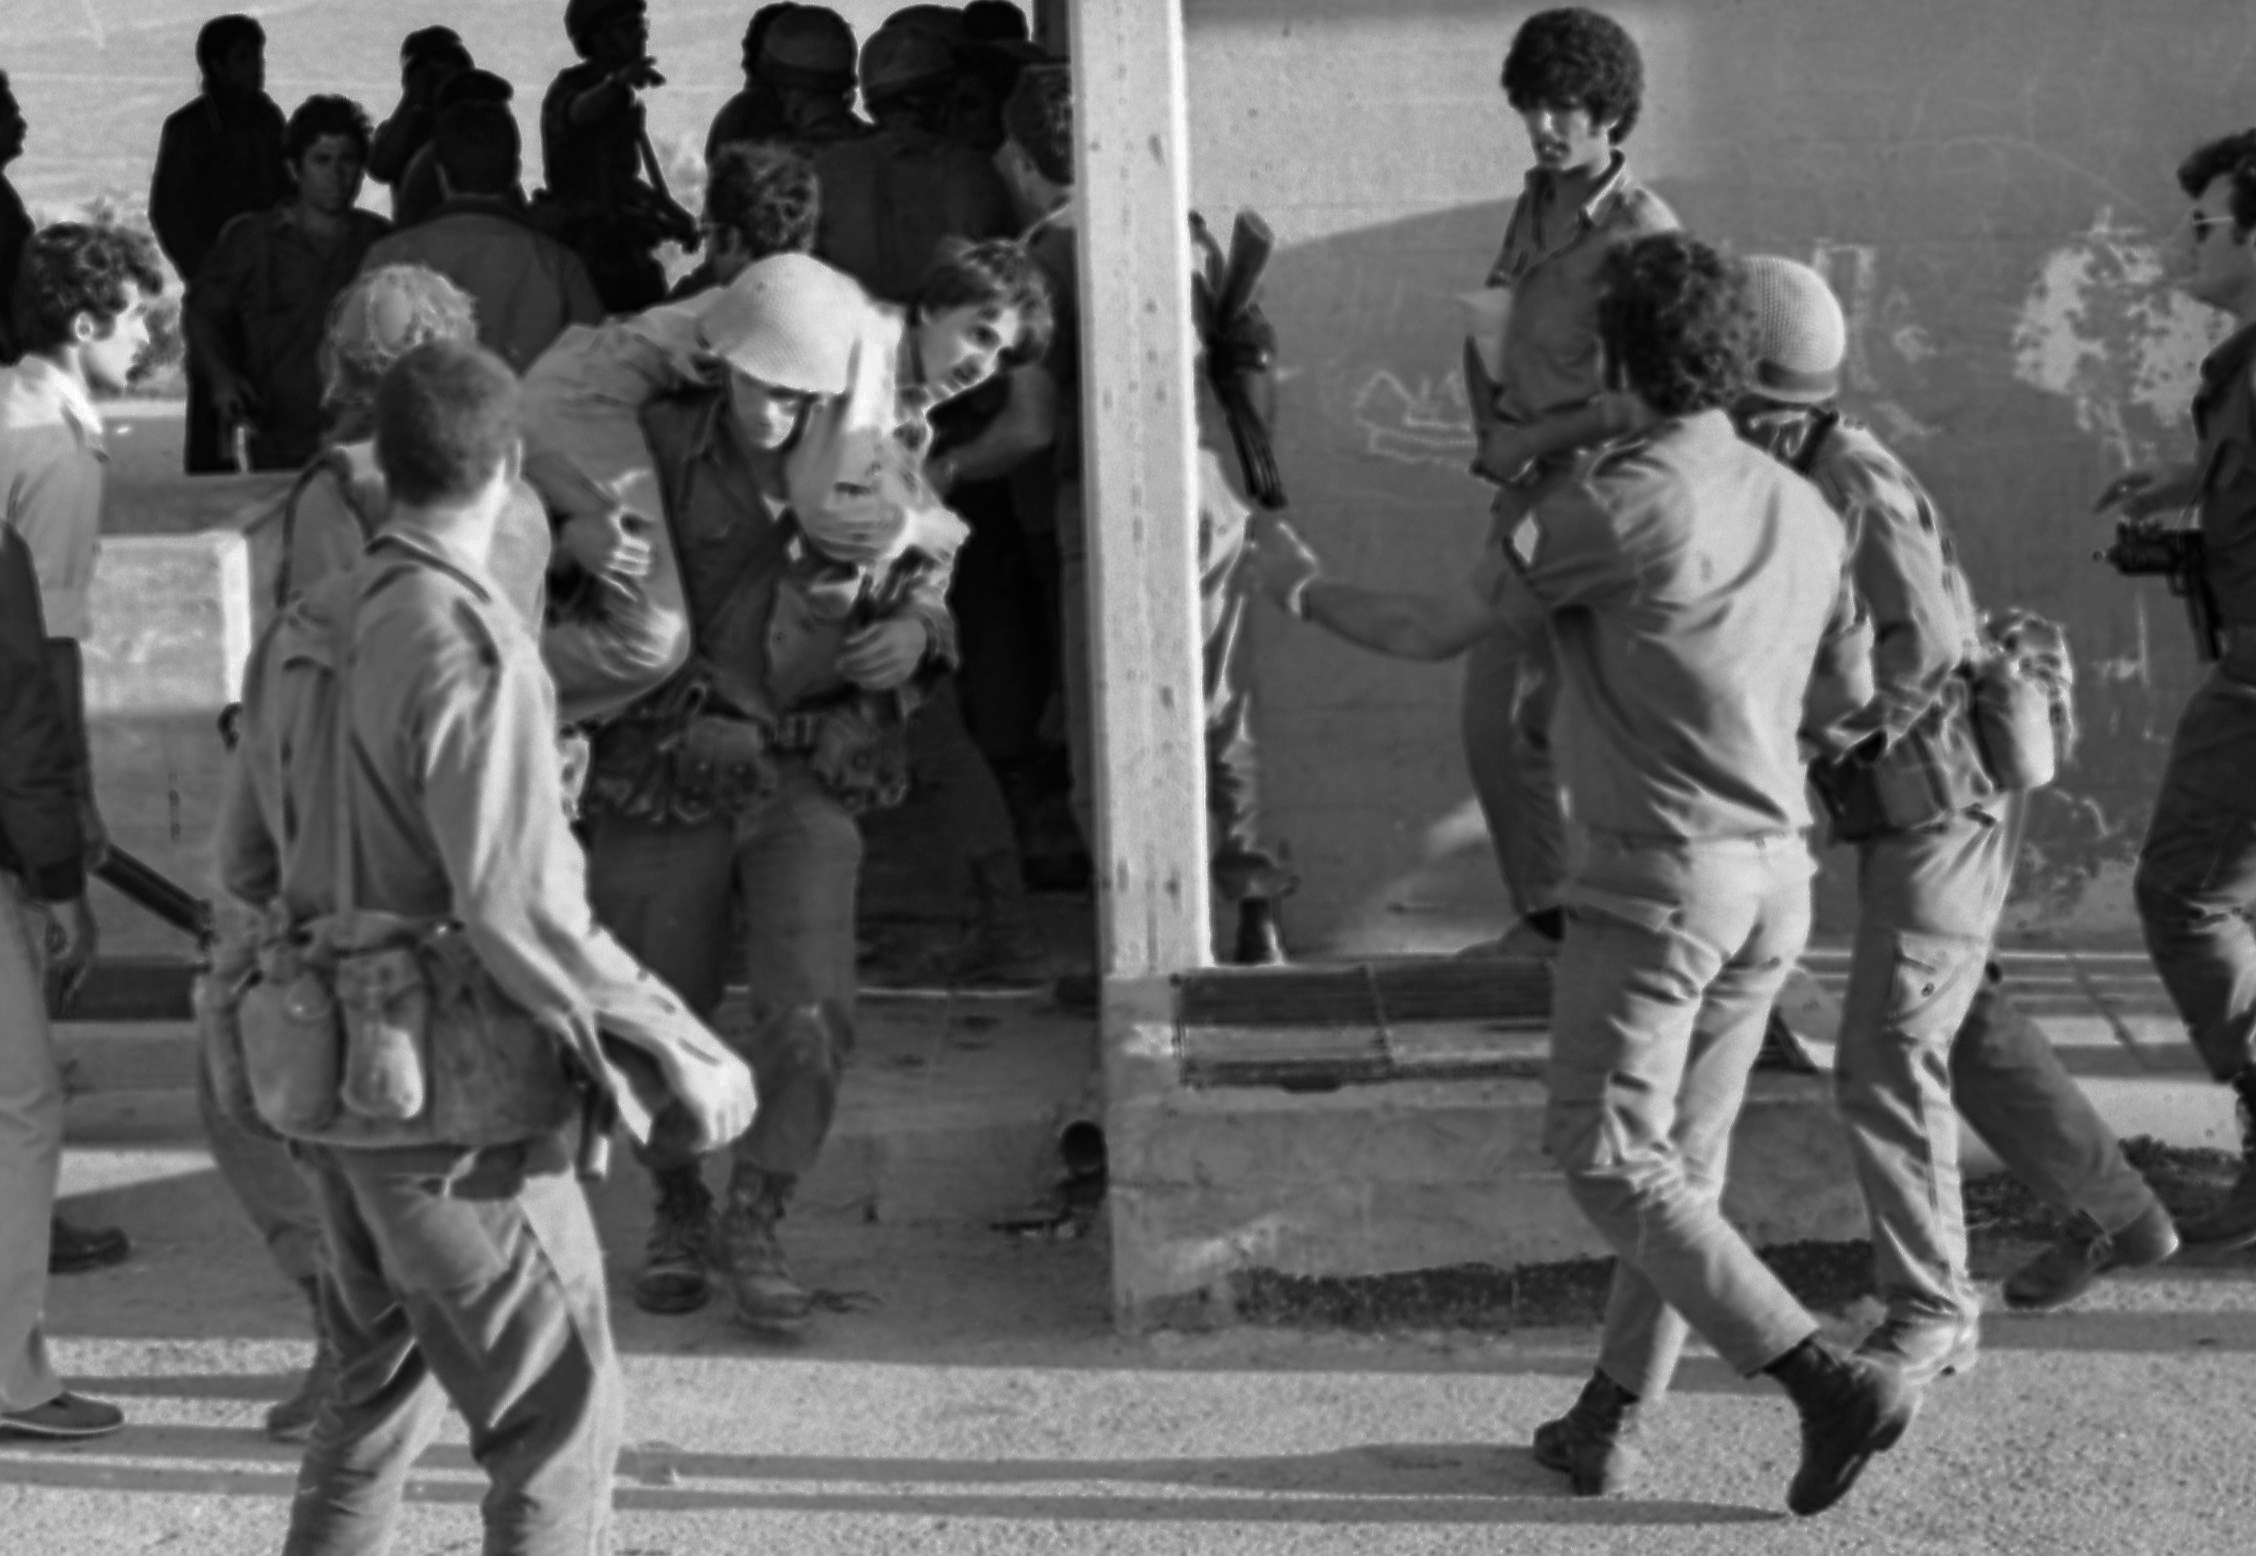 An Arab terrorist group attacked a school at Maalot killing several children and wounded thenth of them. IDF attacked the group killing the terrorists. Photo shows: Soldier rescue the wounded children from the school 1974/05/15 Copyright © IPPA 09239-004-14 Photo by IPPA Staff